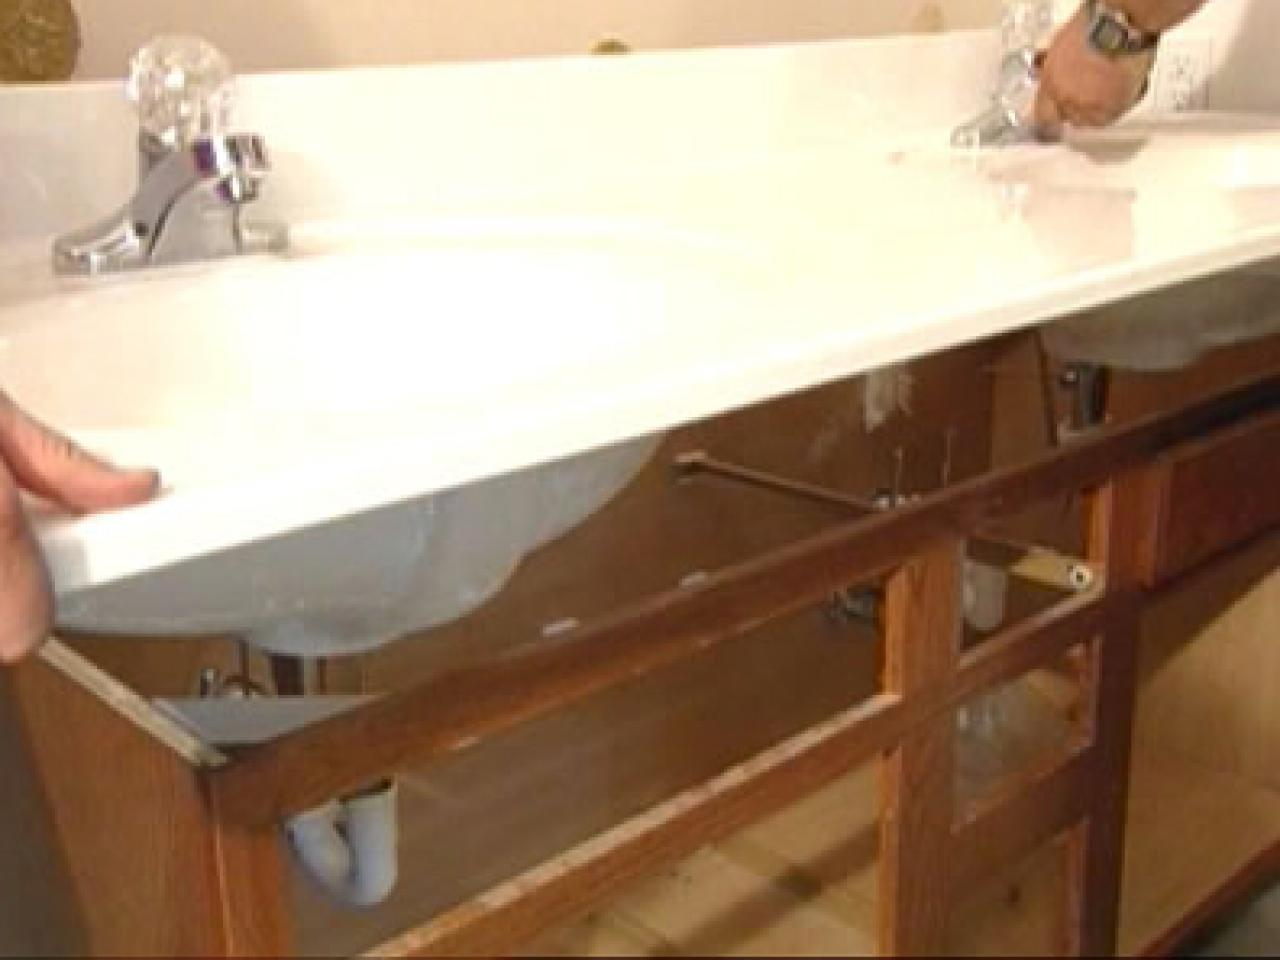 How To Demolish A Bathroom Howtos DIY - Diy bathroom renovation steps